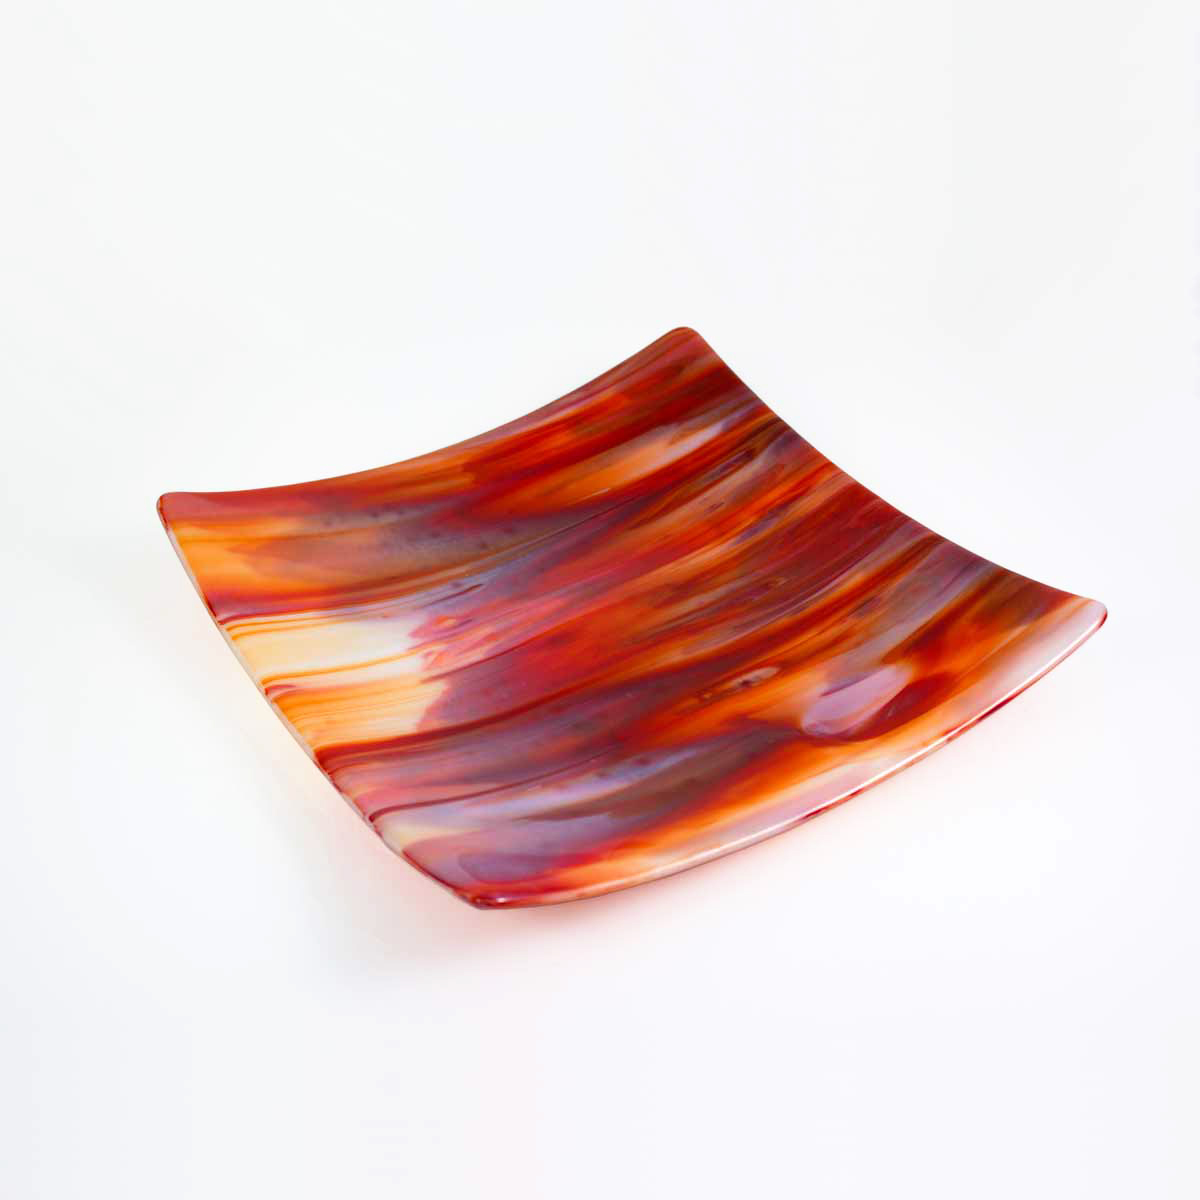 A Kiln-formed glass platter in reds and oranges. 30cm square with raised corners (3cm) to create a beautiful movement. Stunning!!